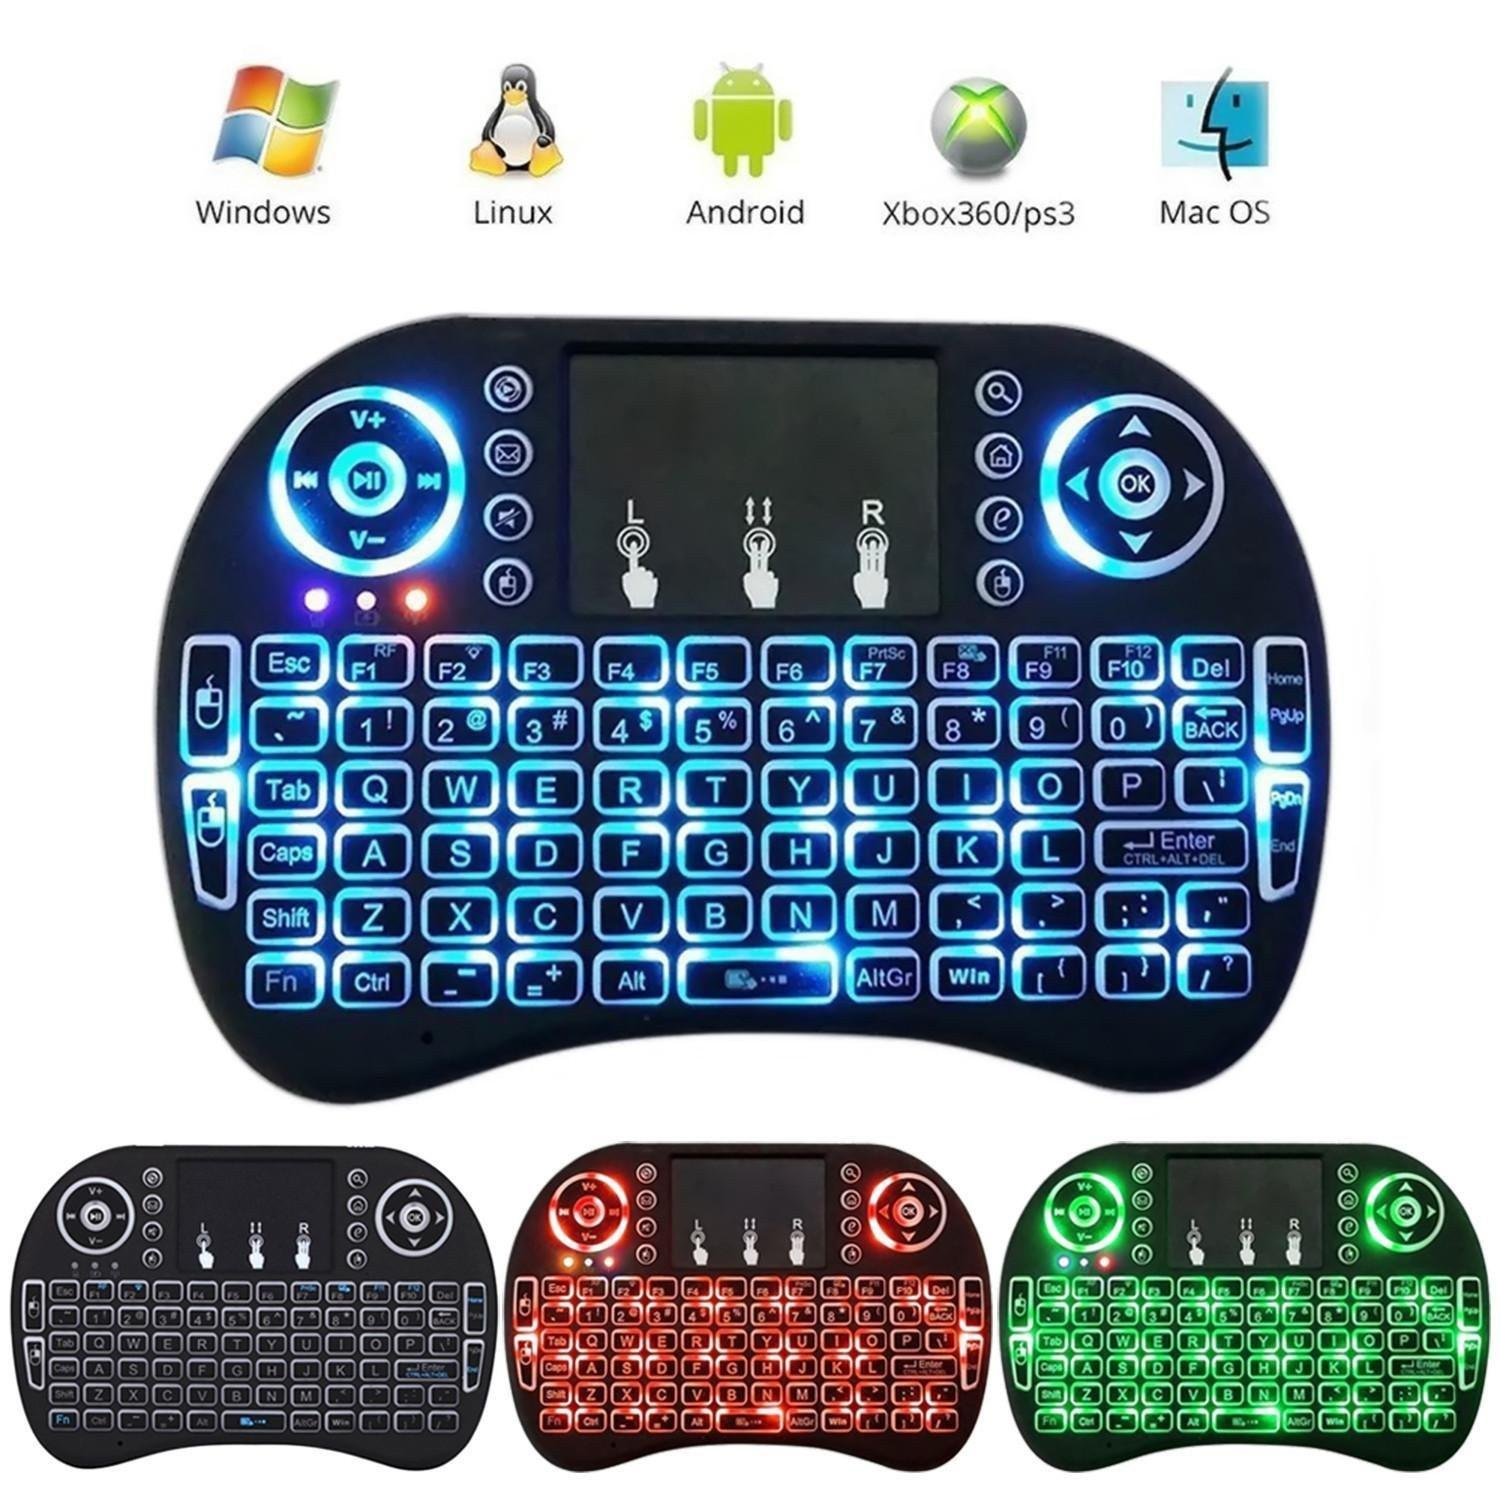 https://www.lazada.co.id/products/mini-keyboard-wireless-i8-24g-handheld-keyboard-for-pc-android-tv-box-i572386932-s812718626.html